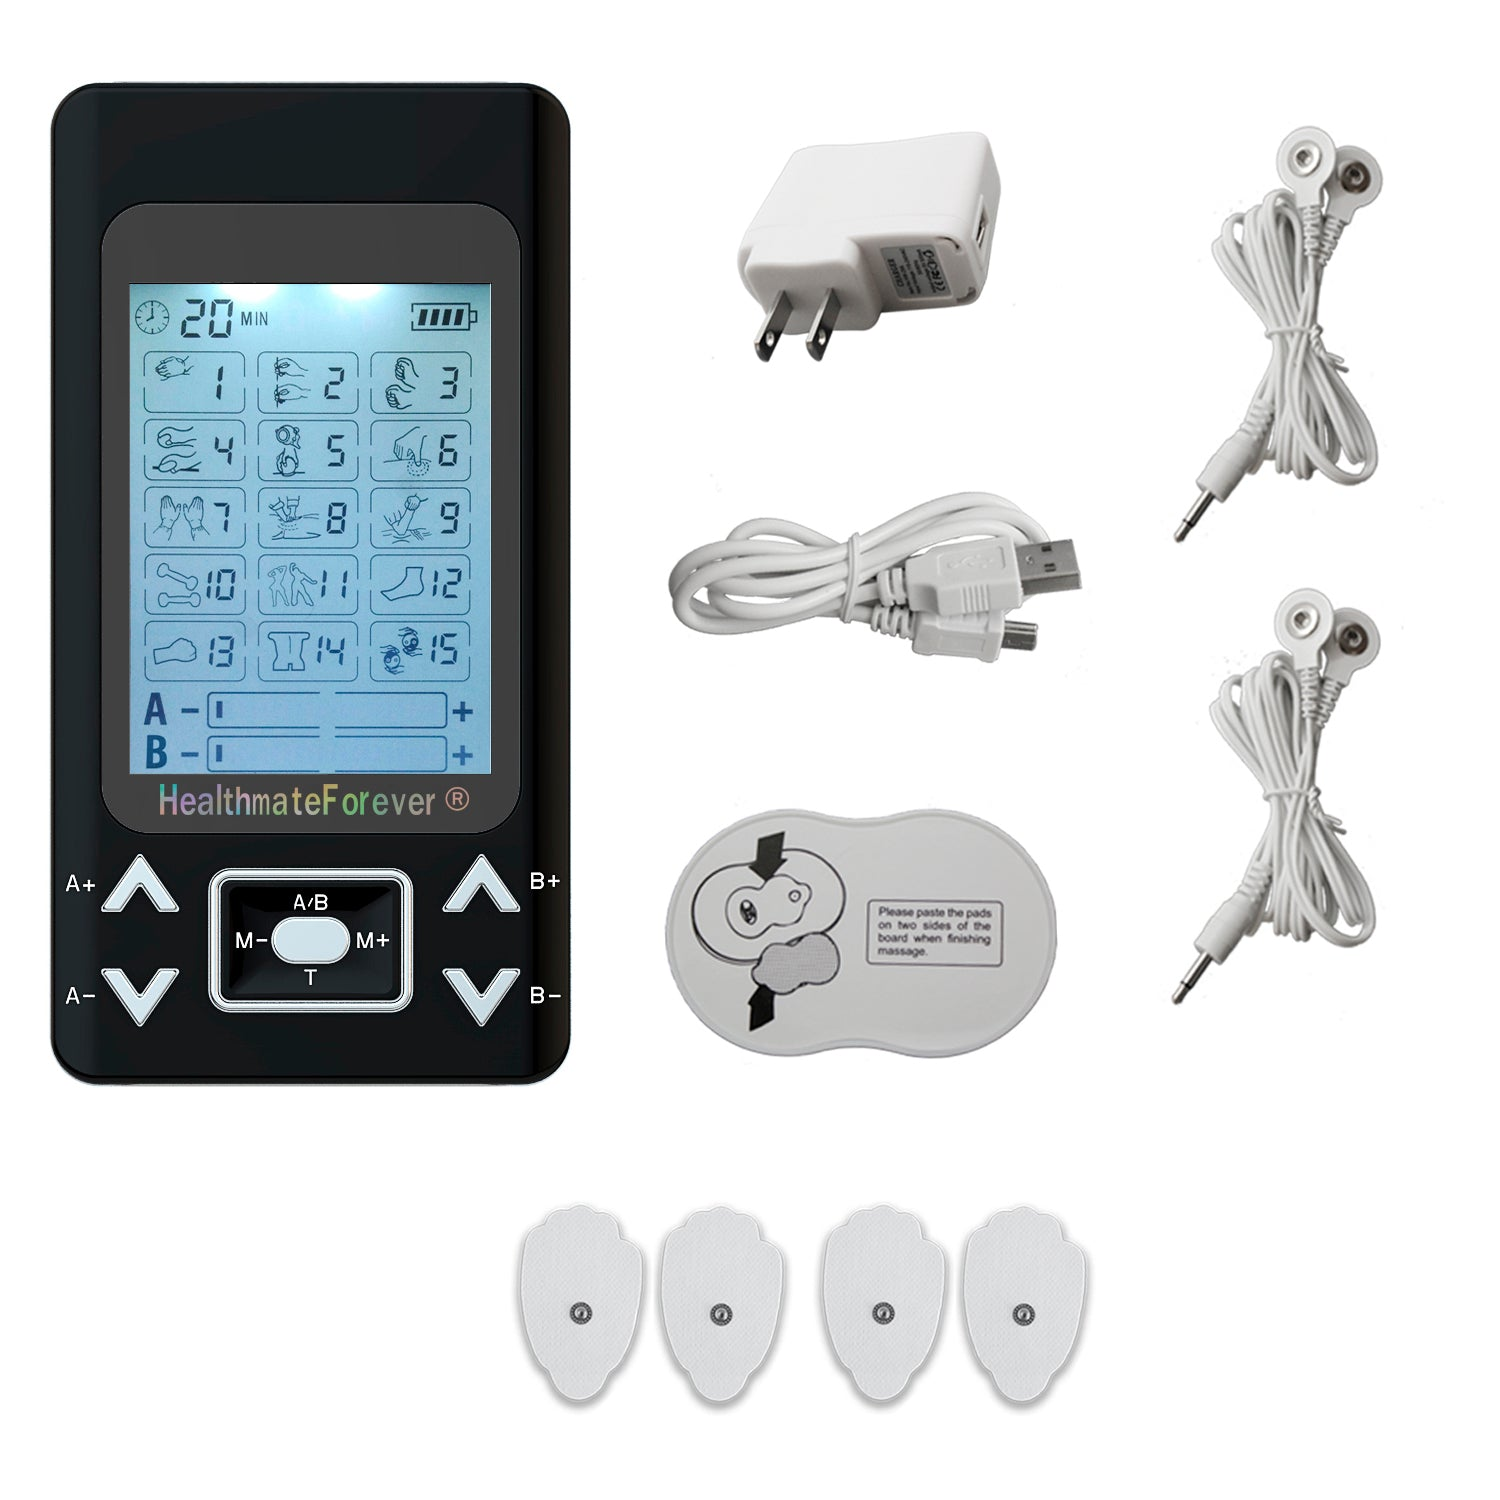 PRO15AB2 Pain Relief TENS Unit & Muscle Stimulator - 2 Year Warranty - HealthmateForever.com